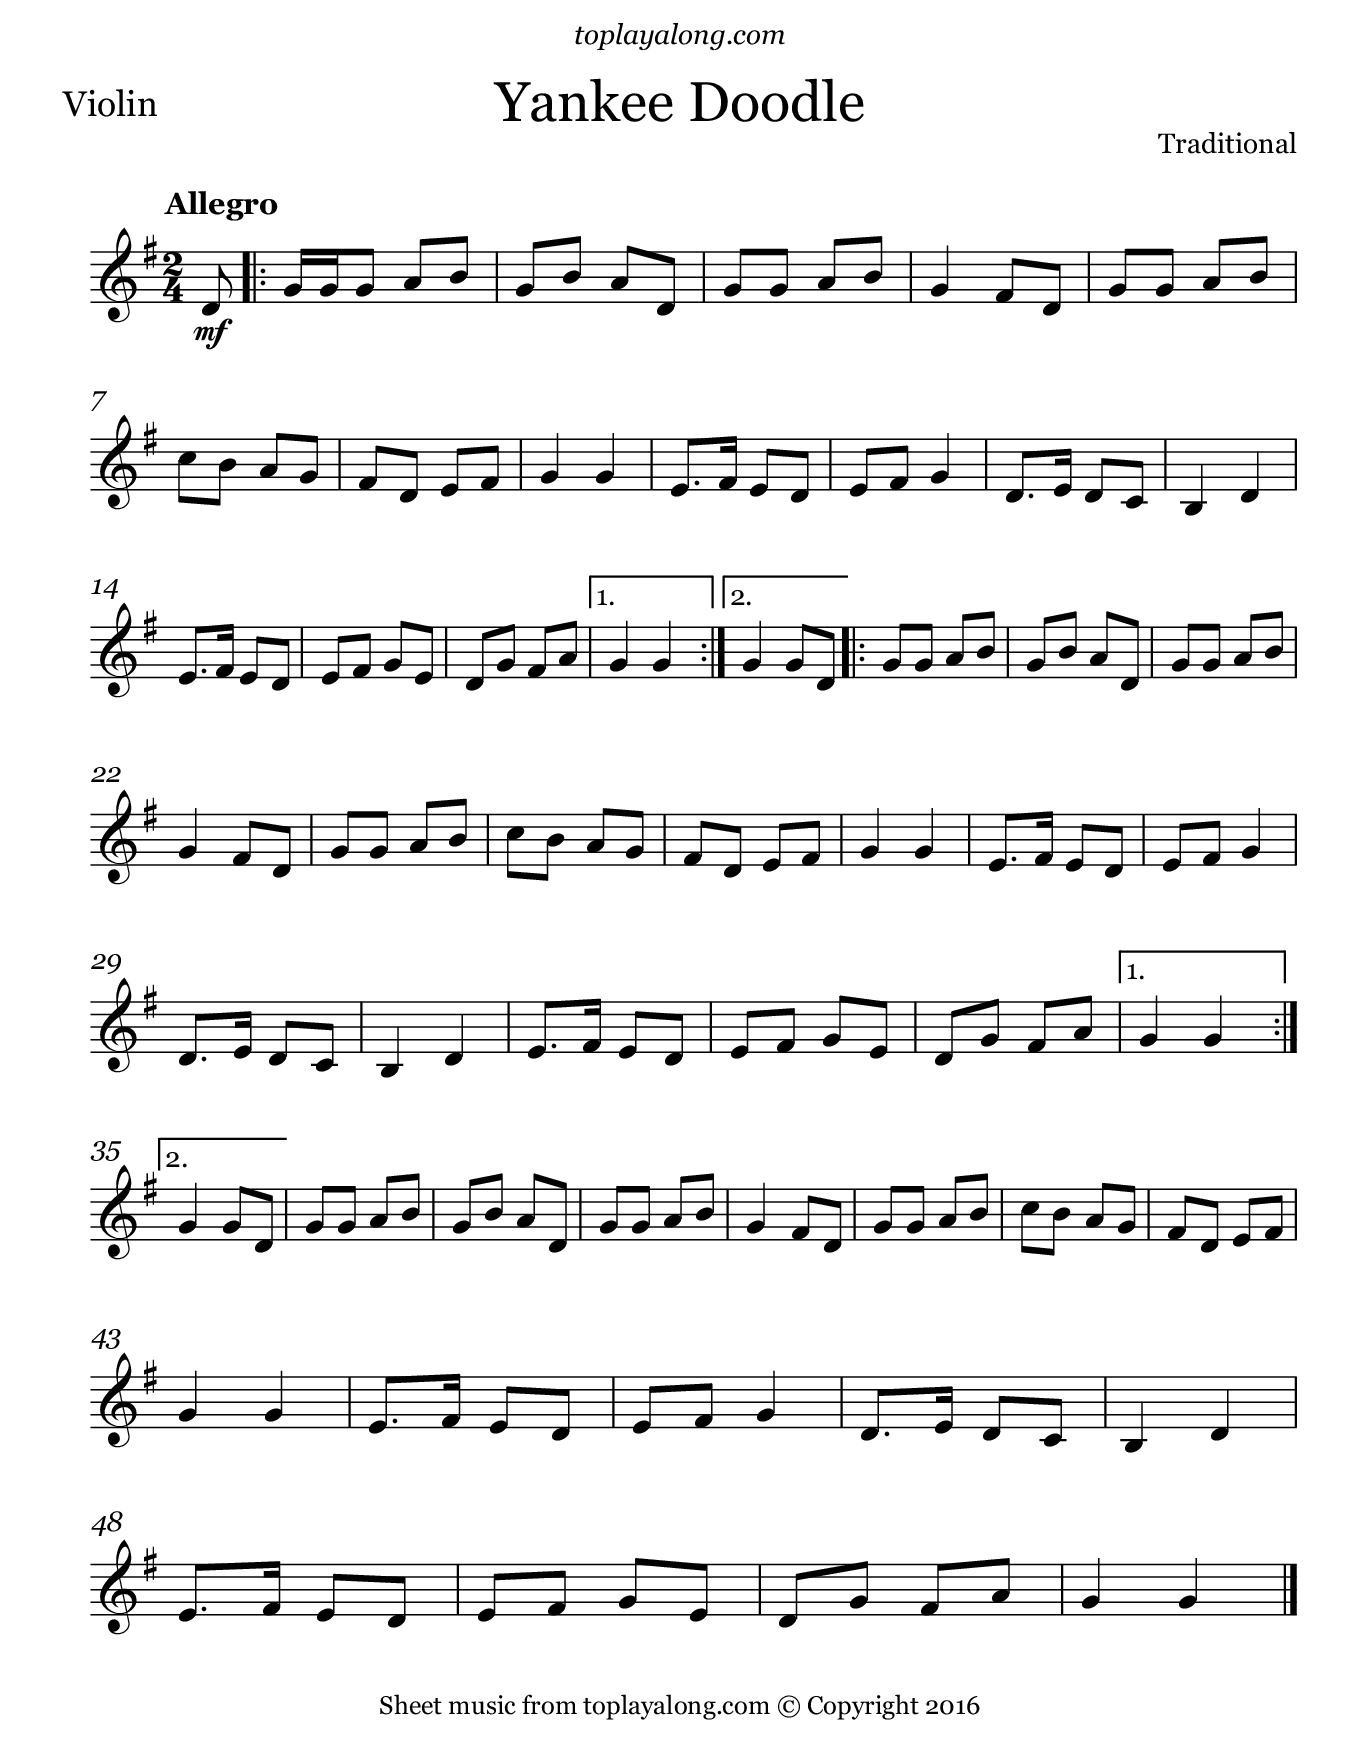 Yankee Doodle. Sheet music for Violin, page 1.